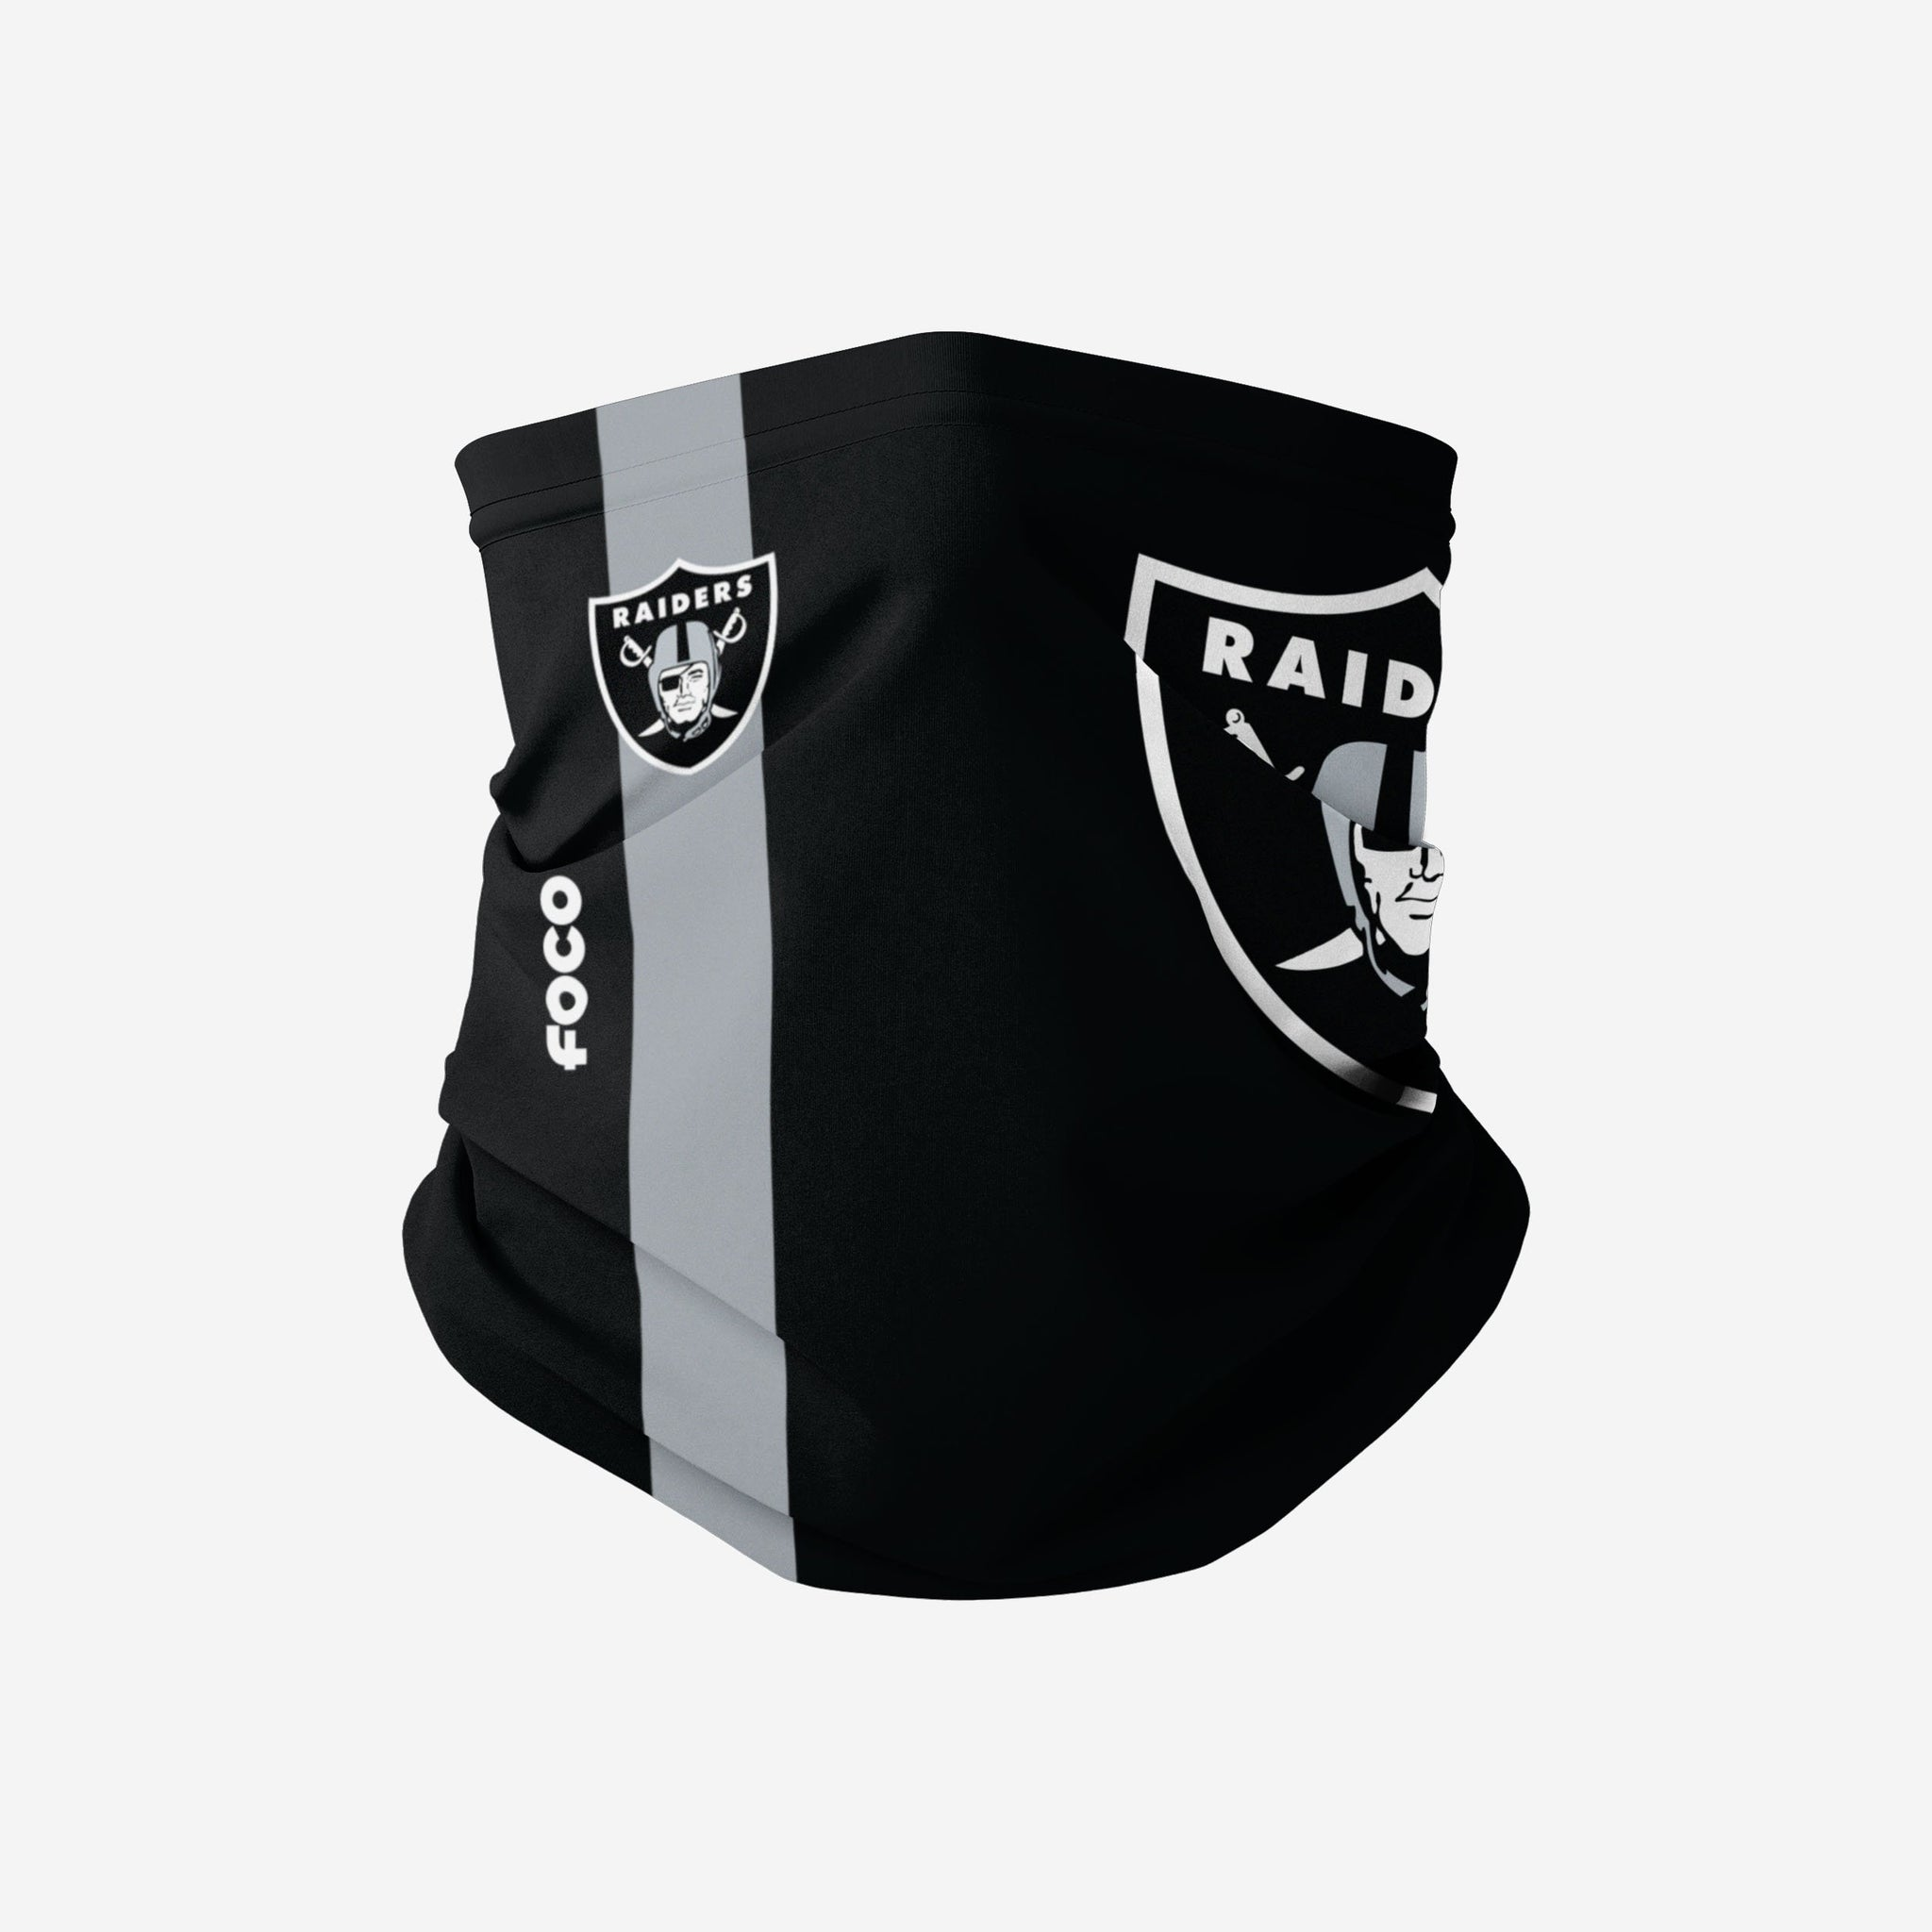 Accessories - NFL Sideline Collection